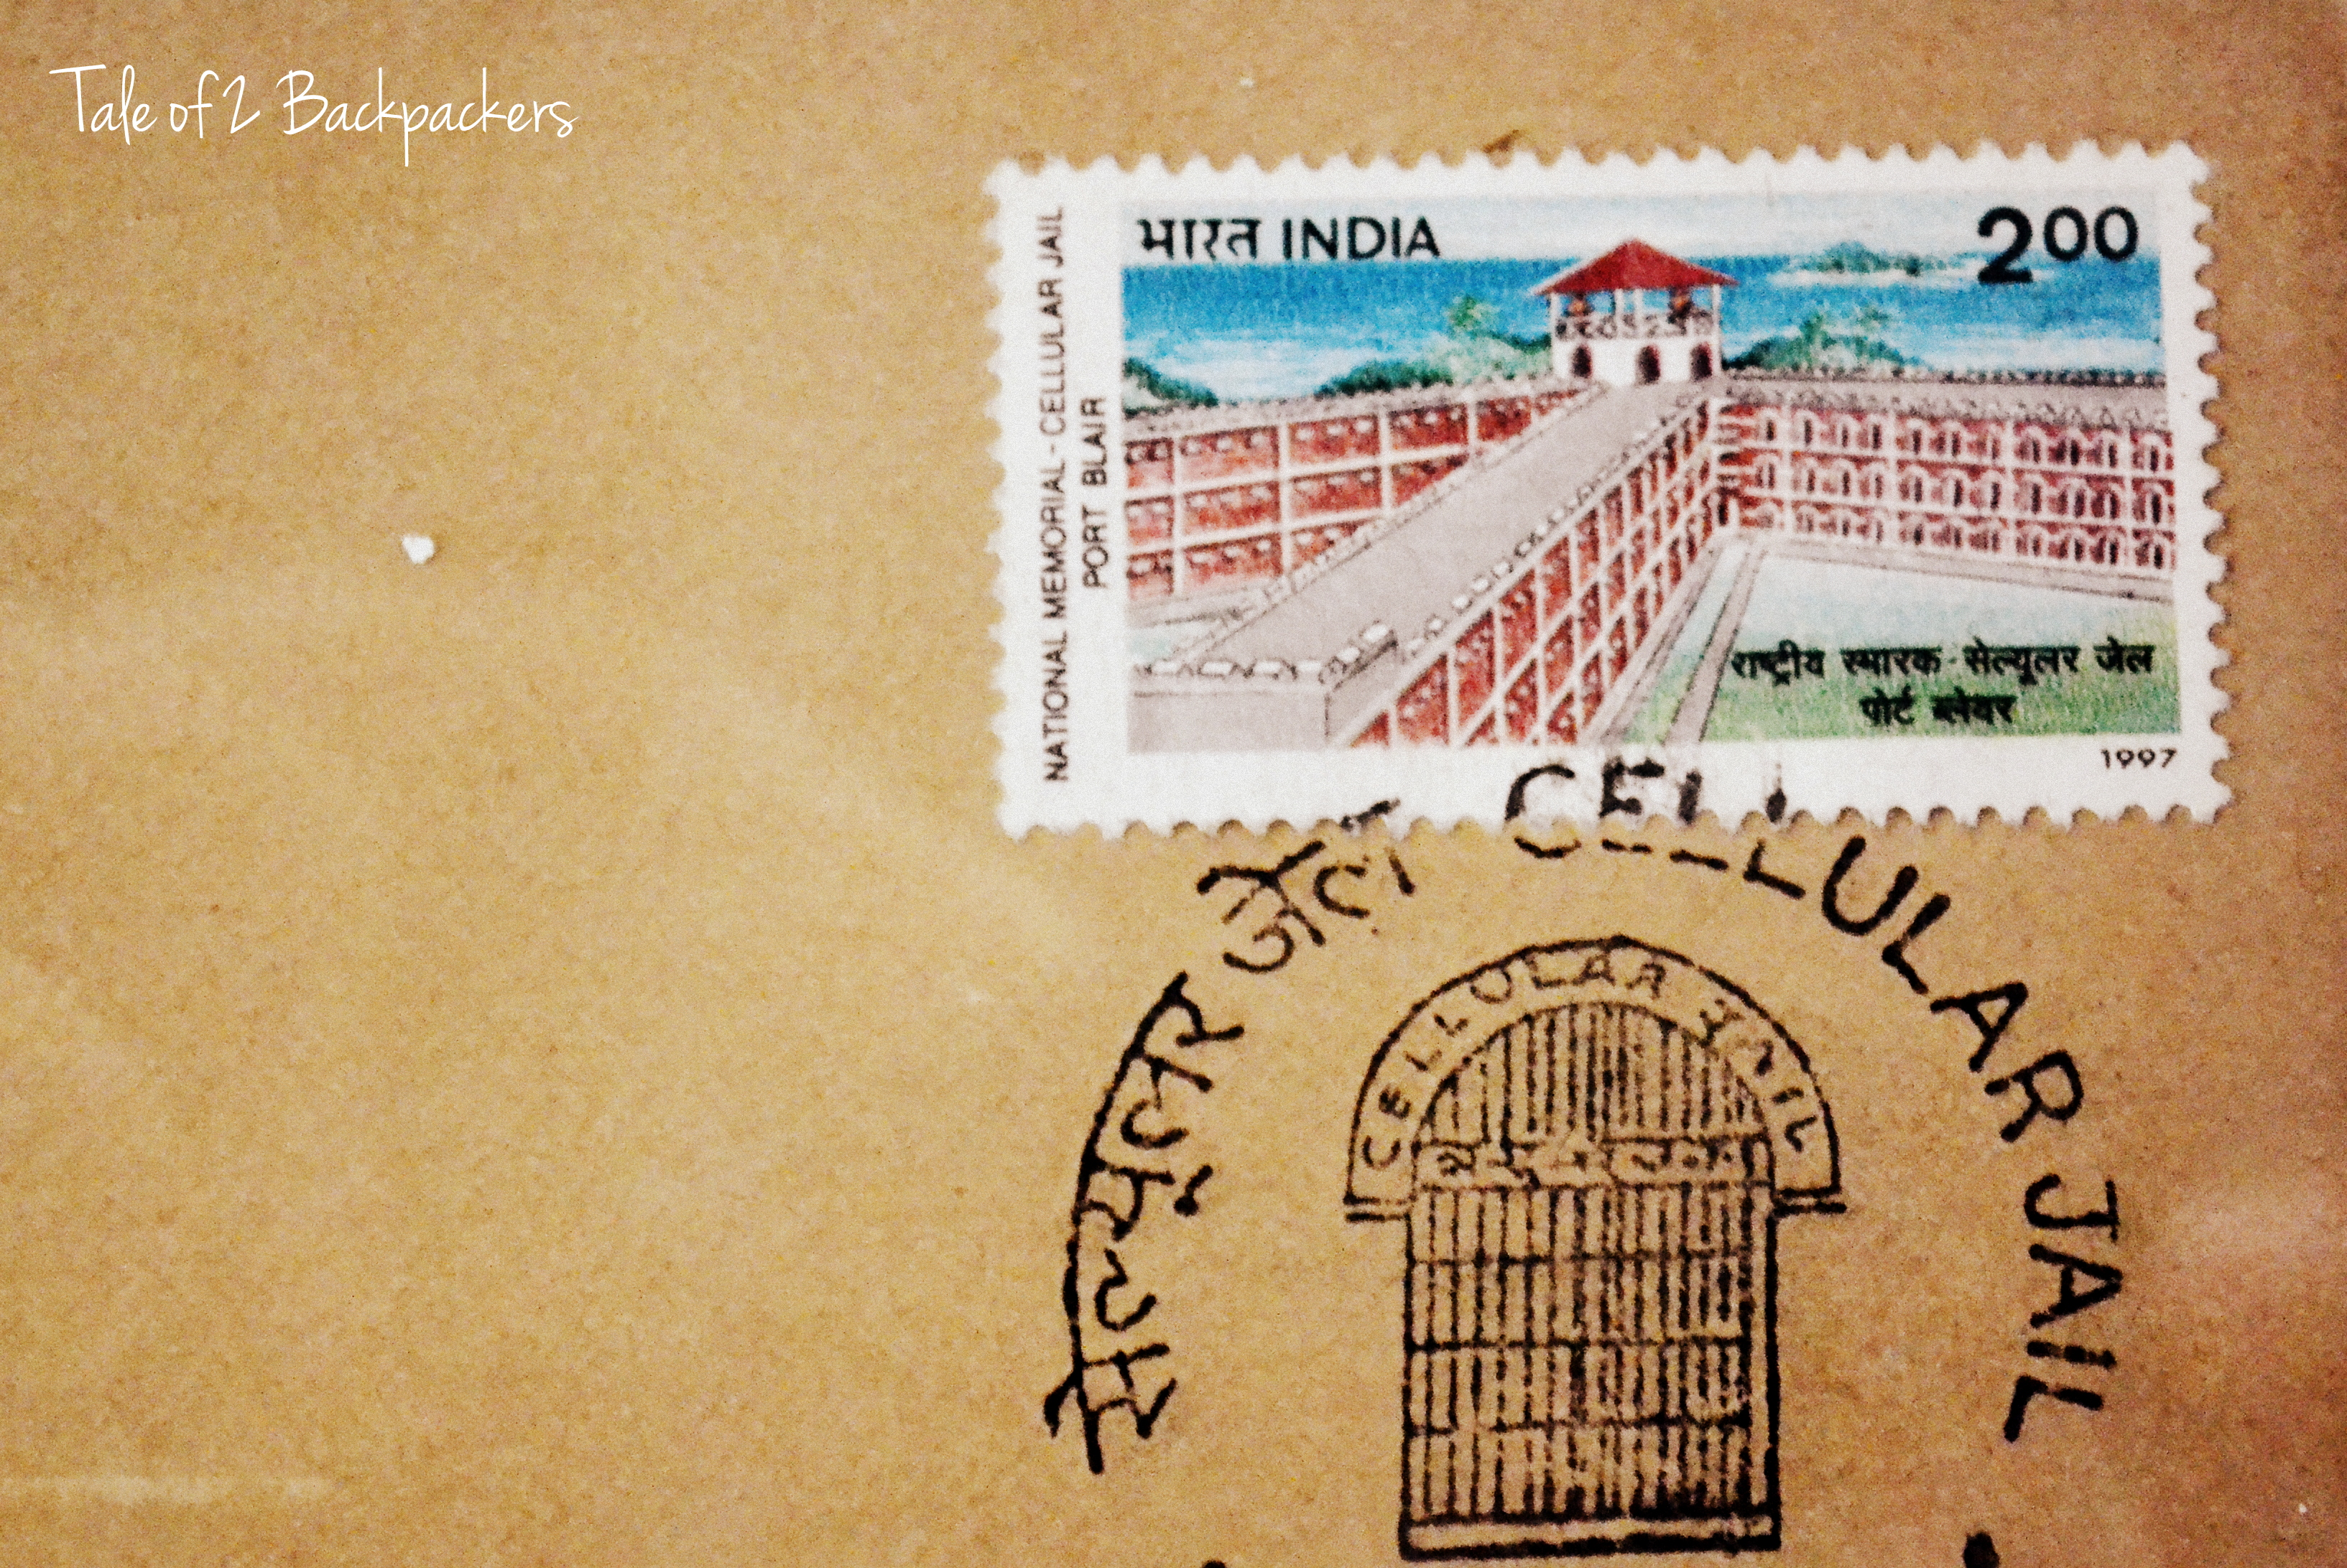 Stamp commemorating the Cellular Jail